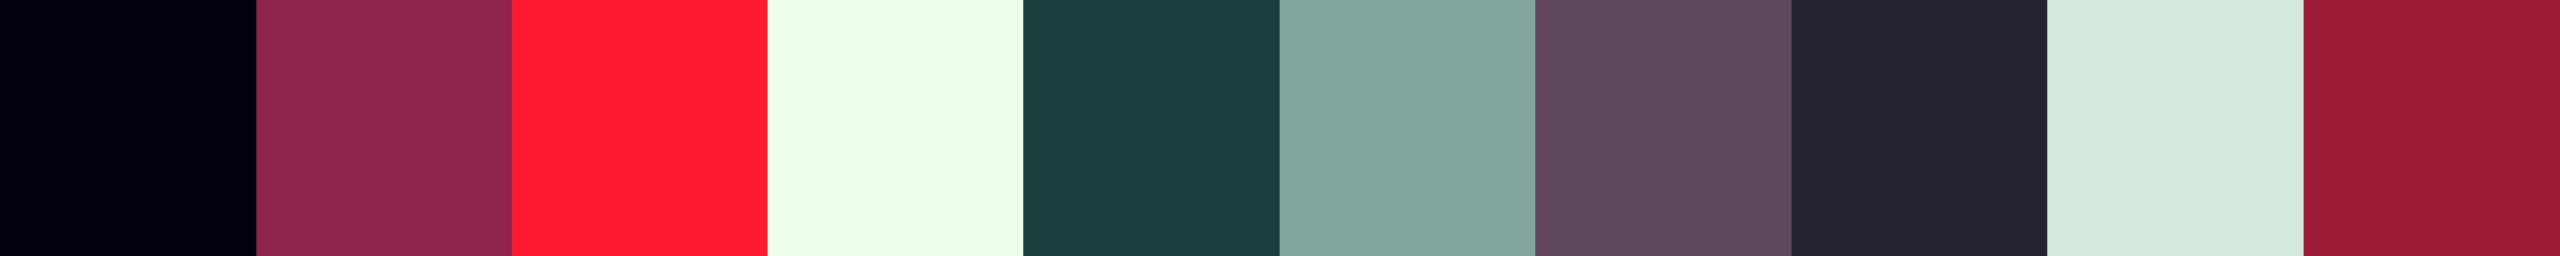 560 Jinkx Color Palette